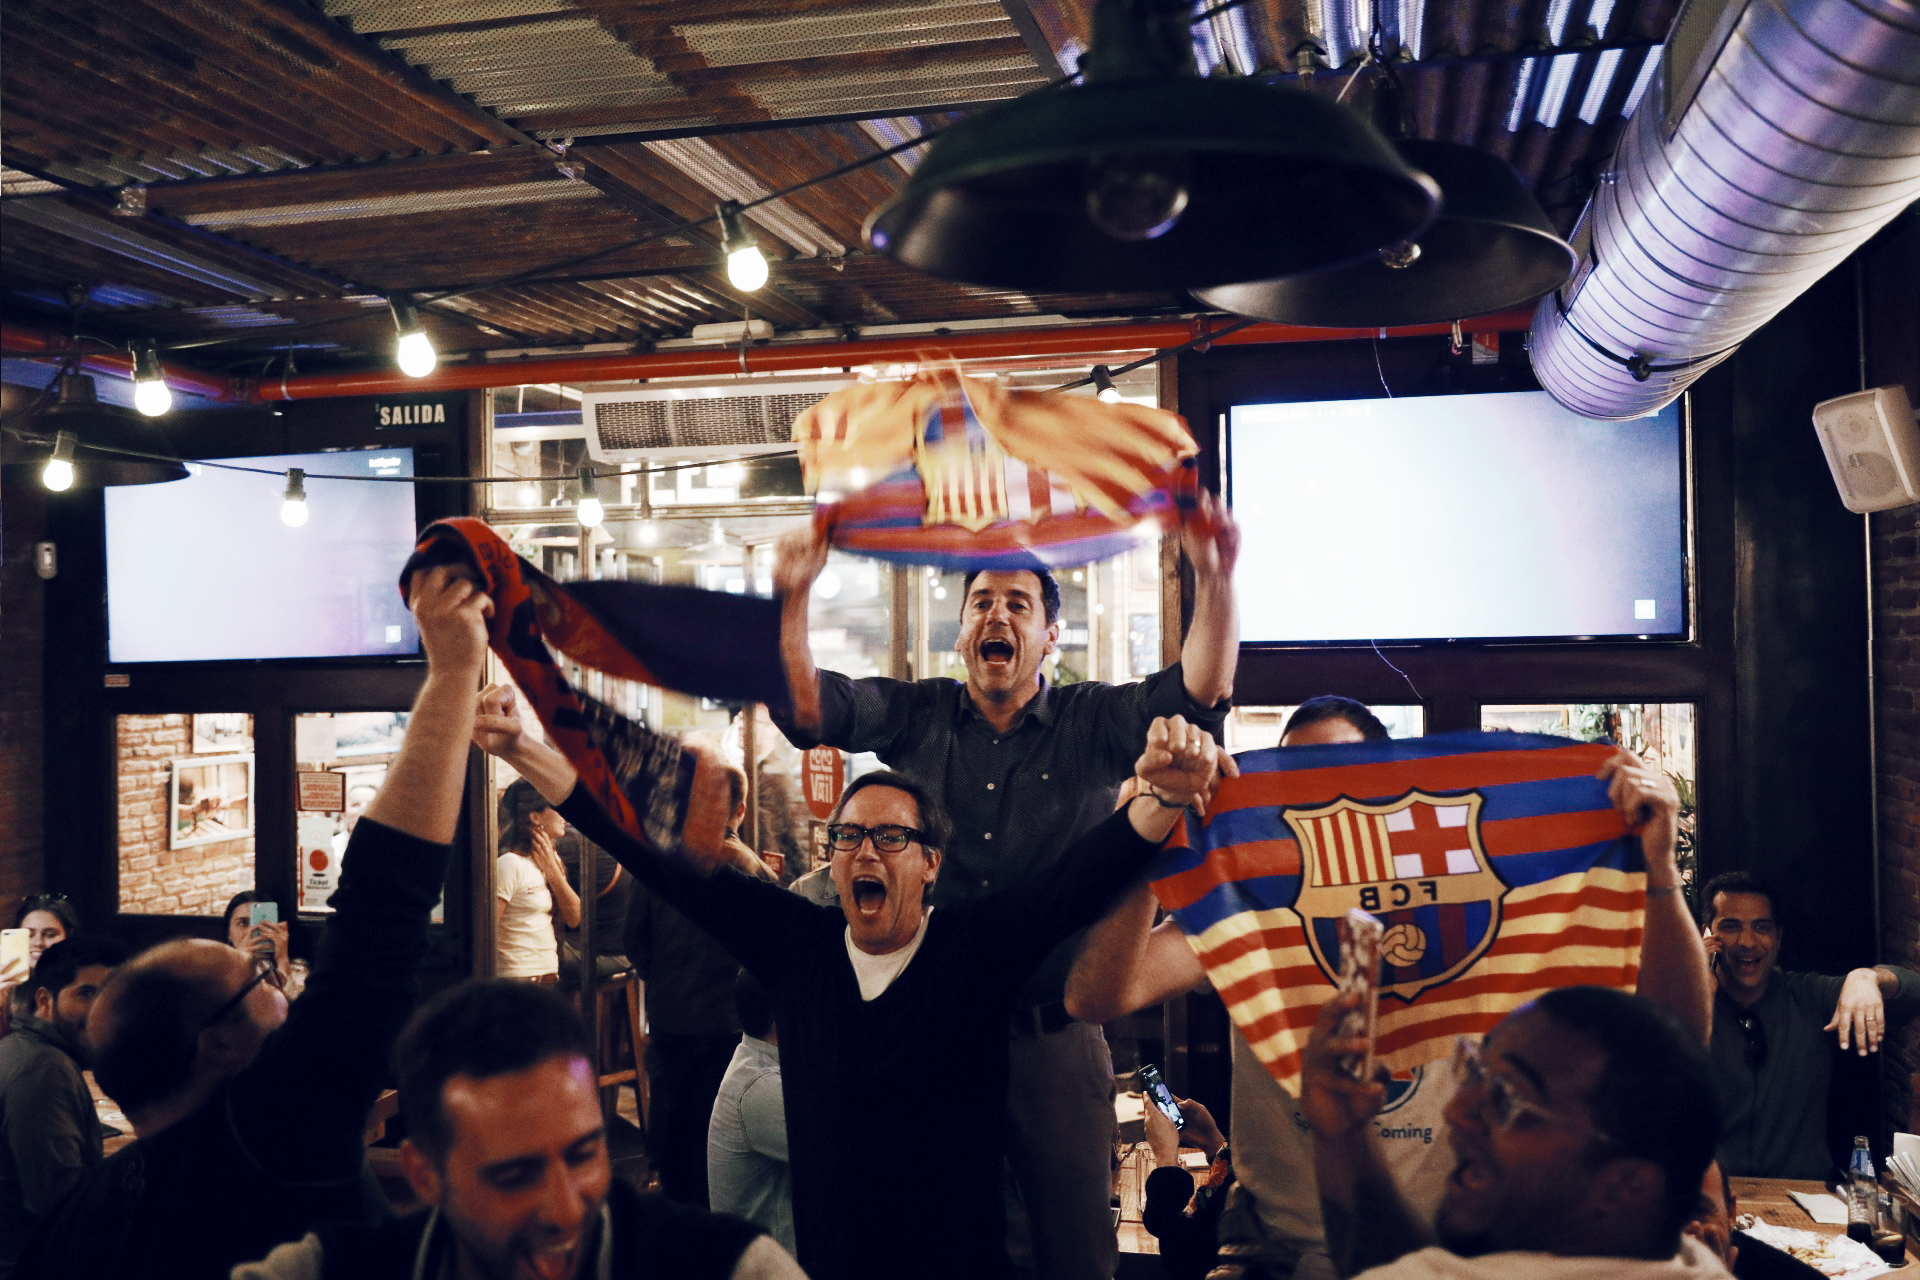 Watch Sports in Barcelona - CocoVail Beer Hall Barcelona